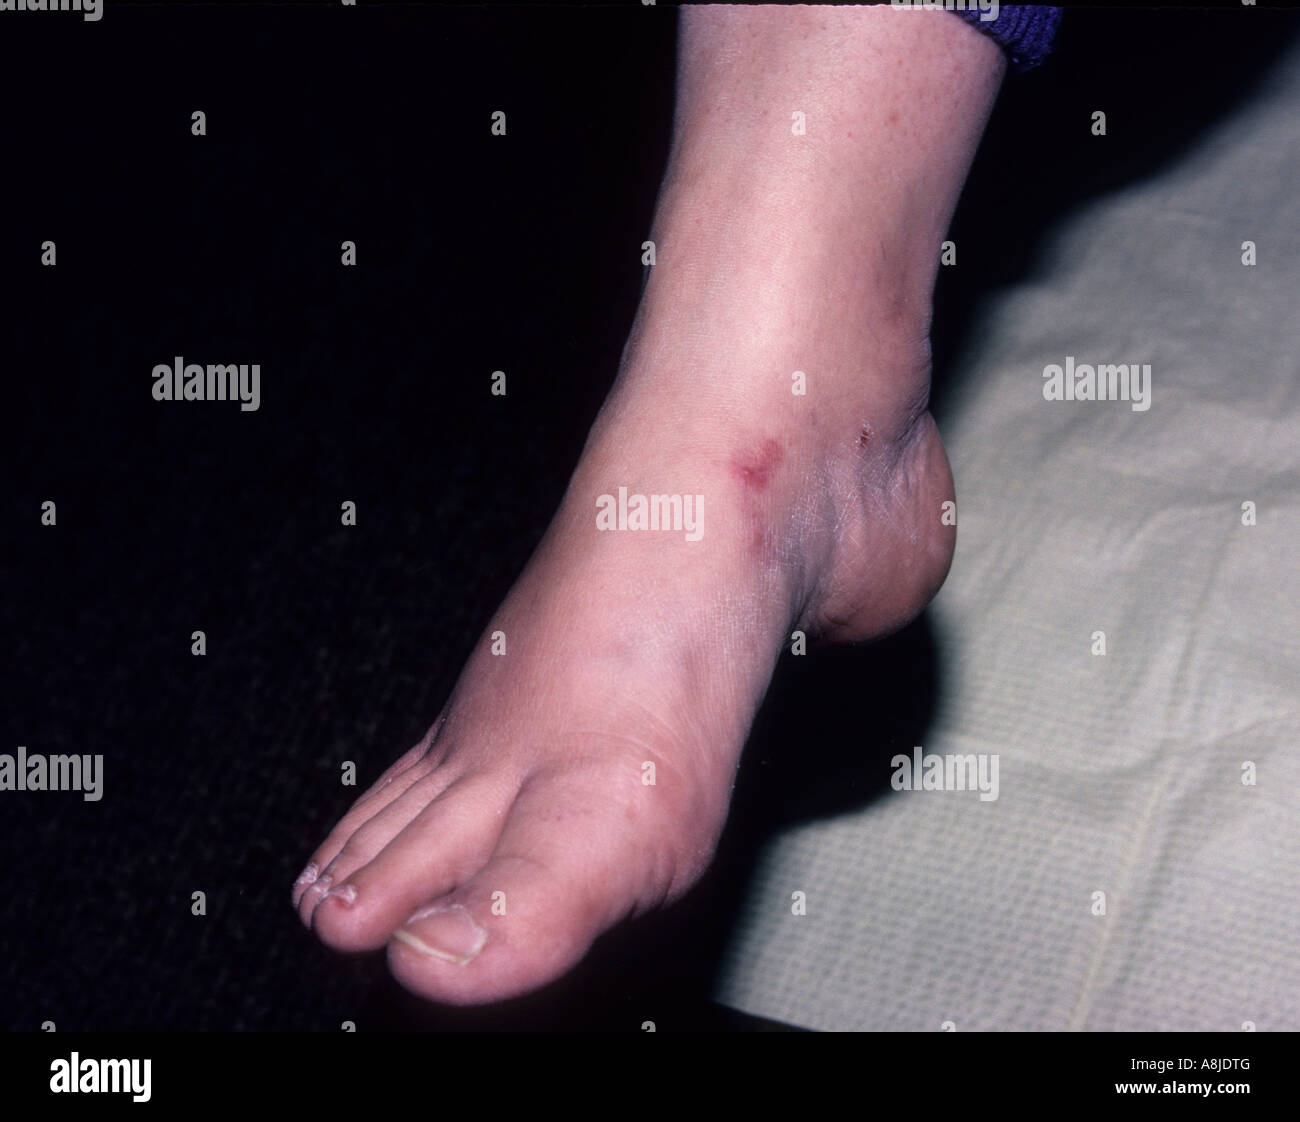 Athletes foot caused by the fungus tinea pedis, causing dry cracked heal and sole of the foot. - Stock Image